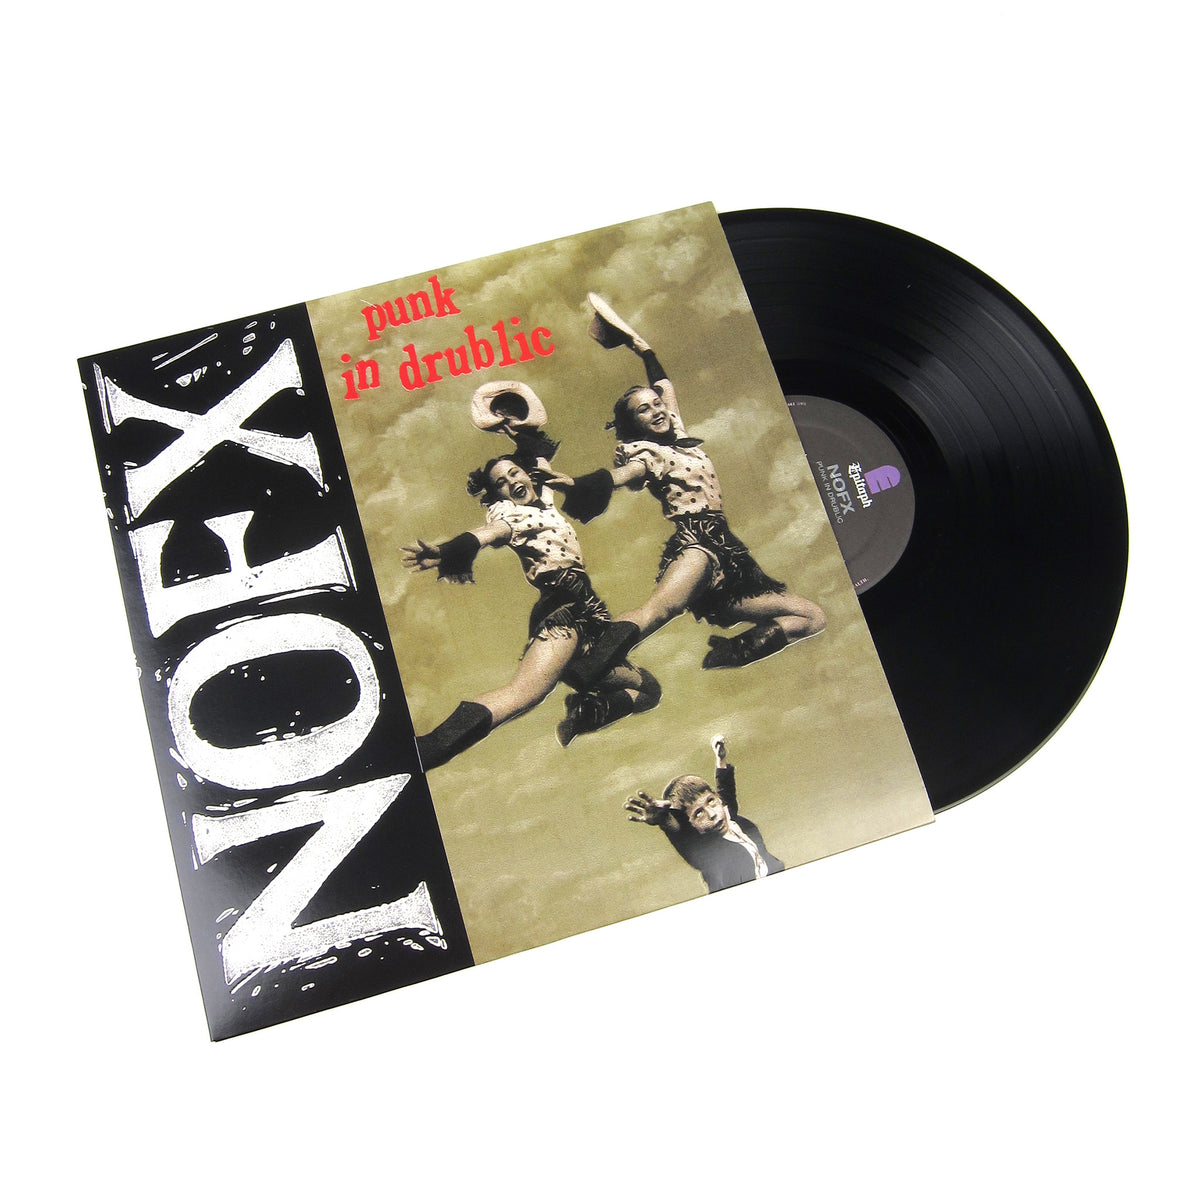 NOFX: Punk In Drublic 20th Anniversary Edition (180g) Vinyl LP